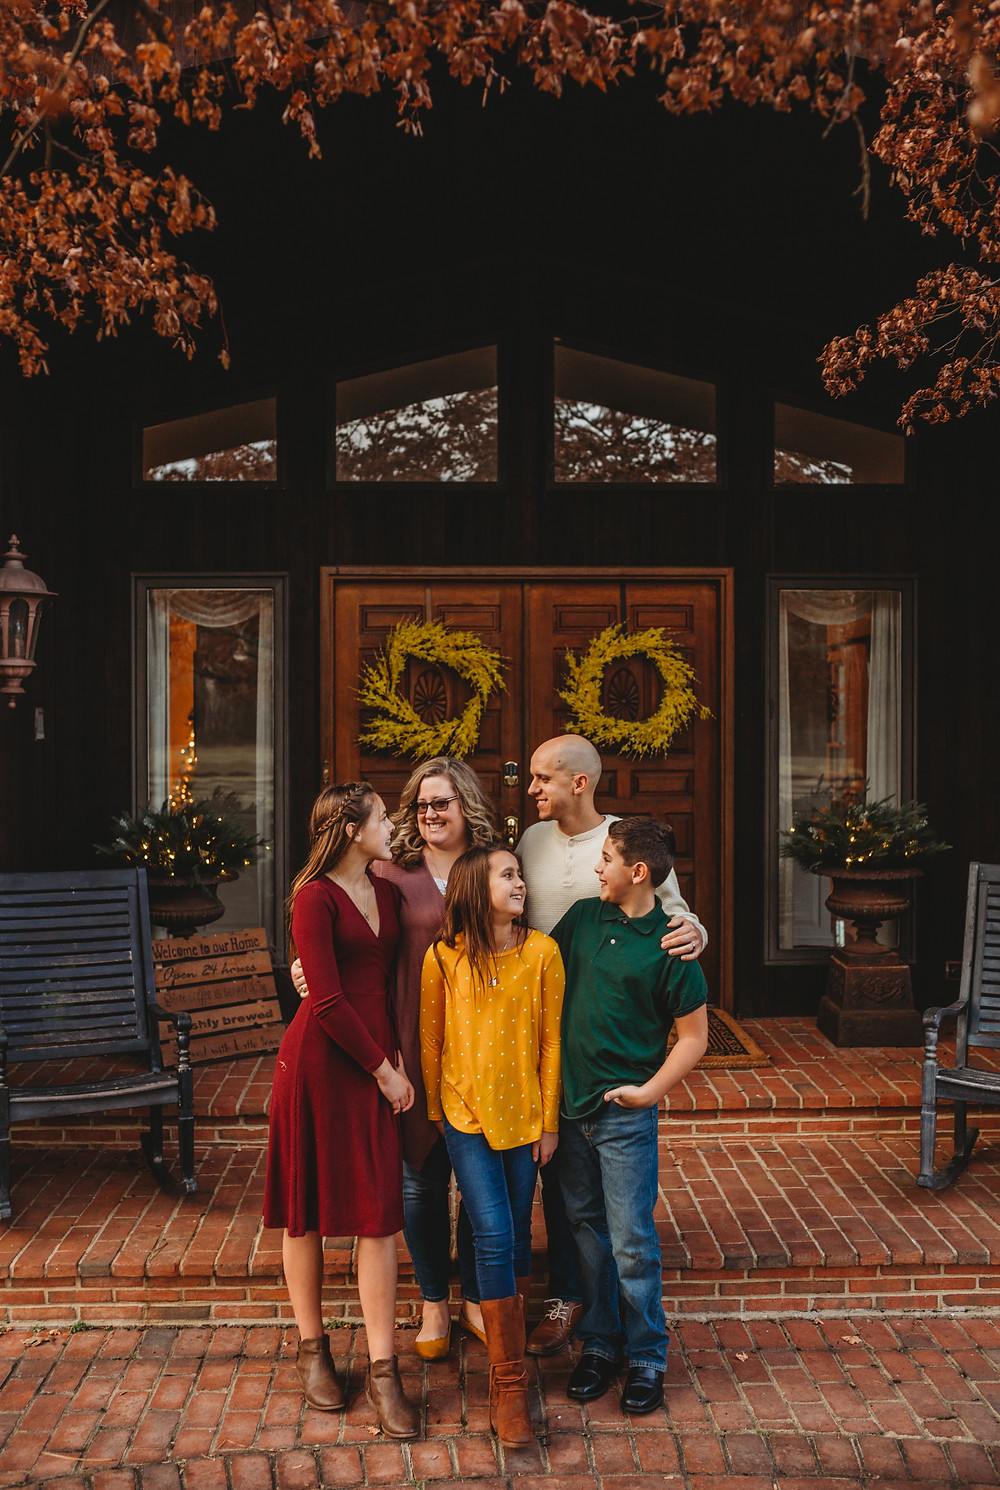 family photo on front porch in fall weather